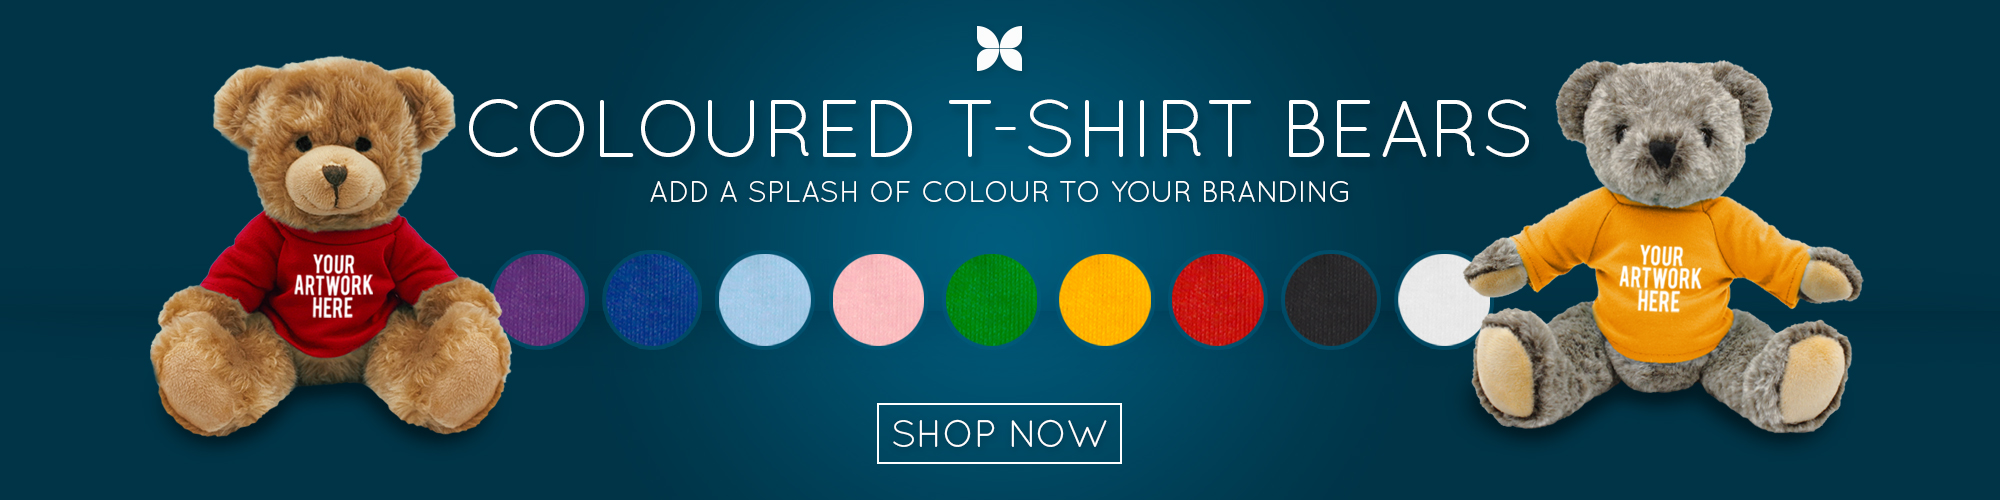 Promotional Products | Printed Soft Toys with Coloured T-Shirts - Add a splash of colour to your Branding